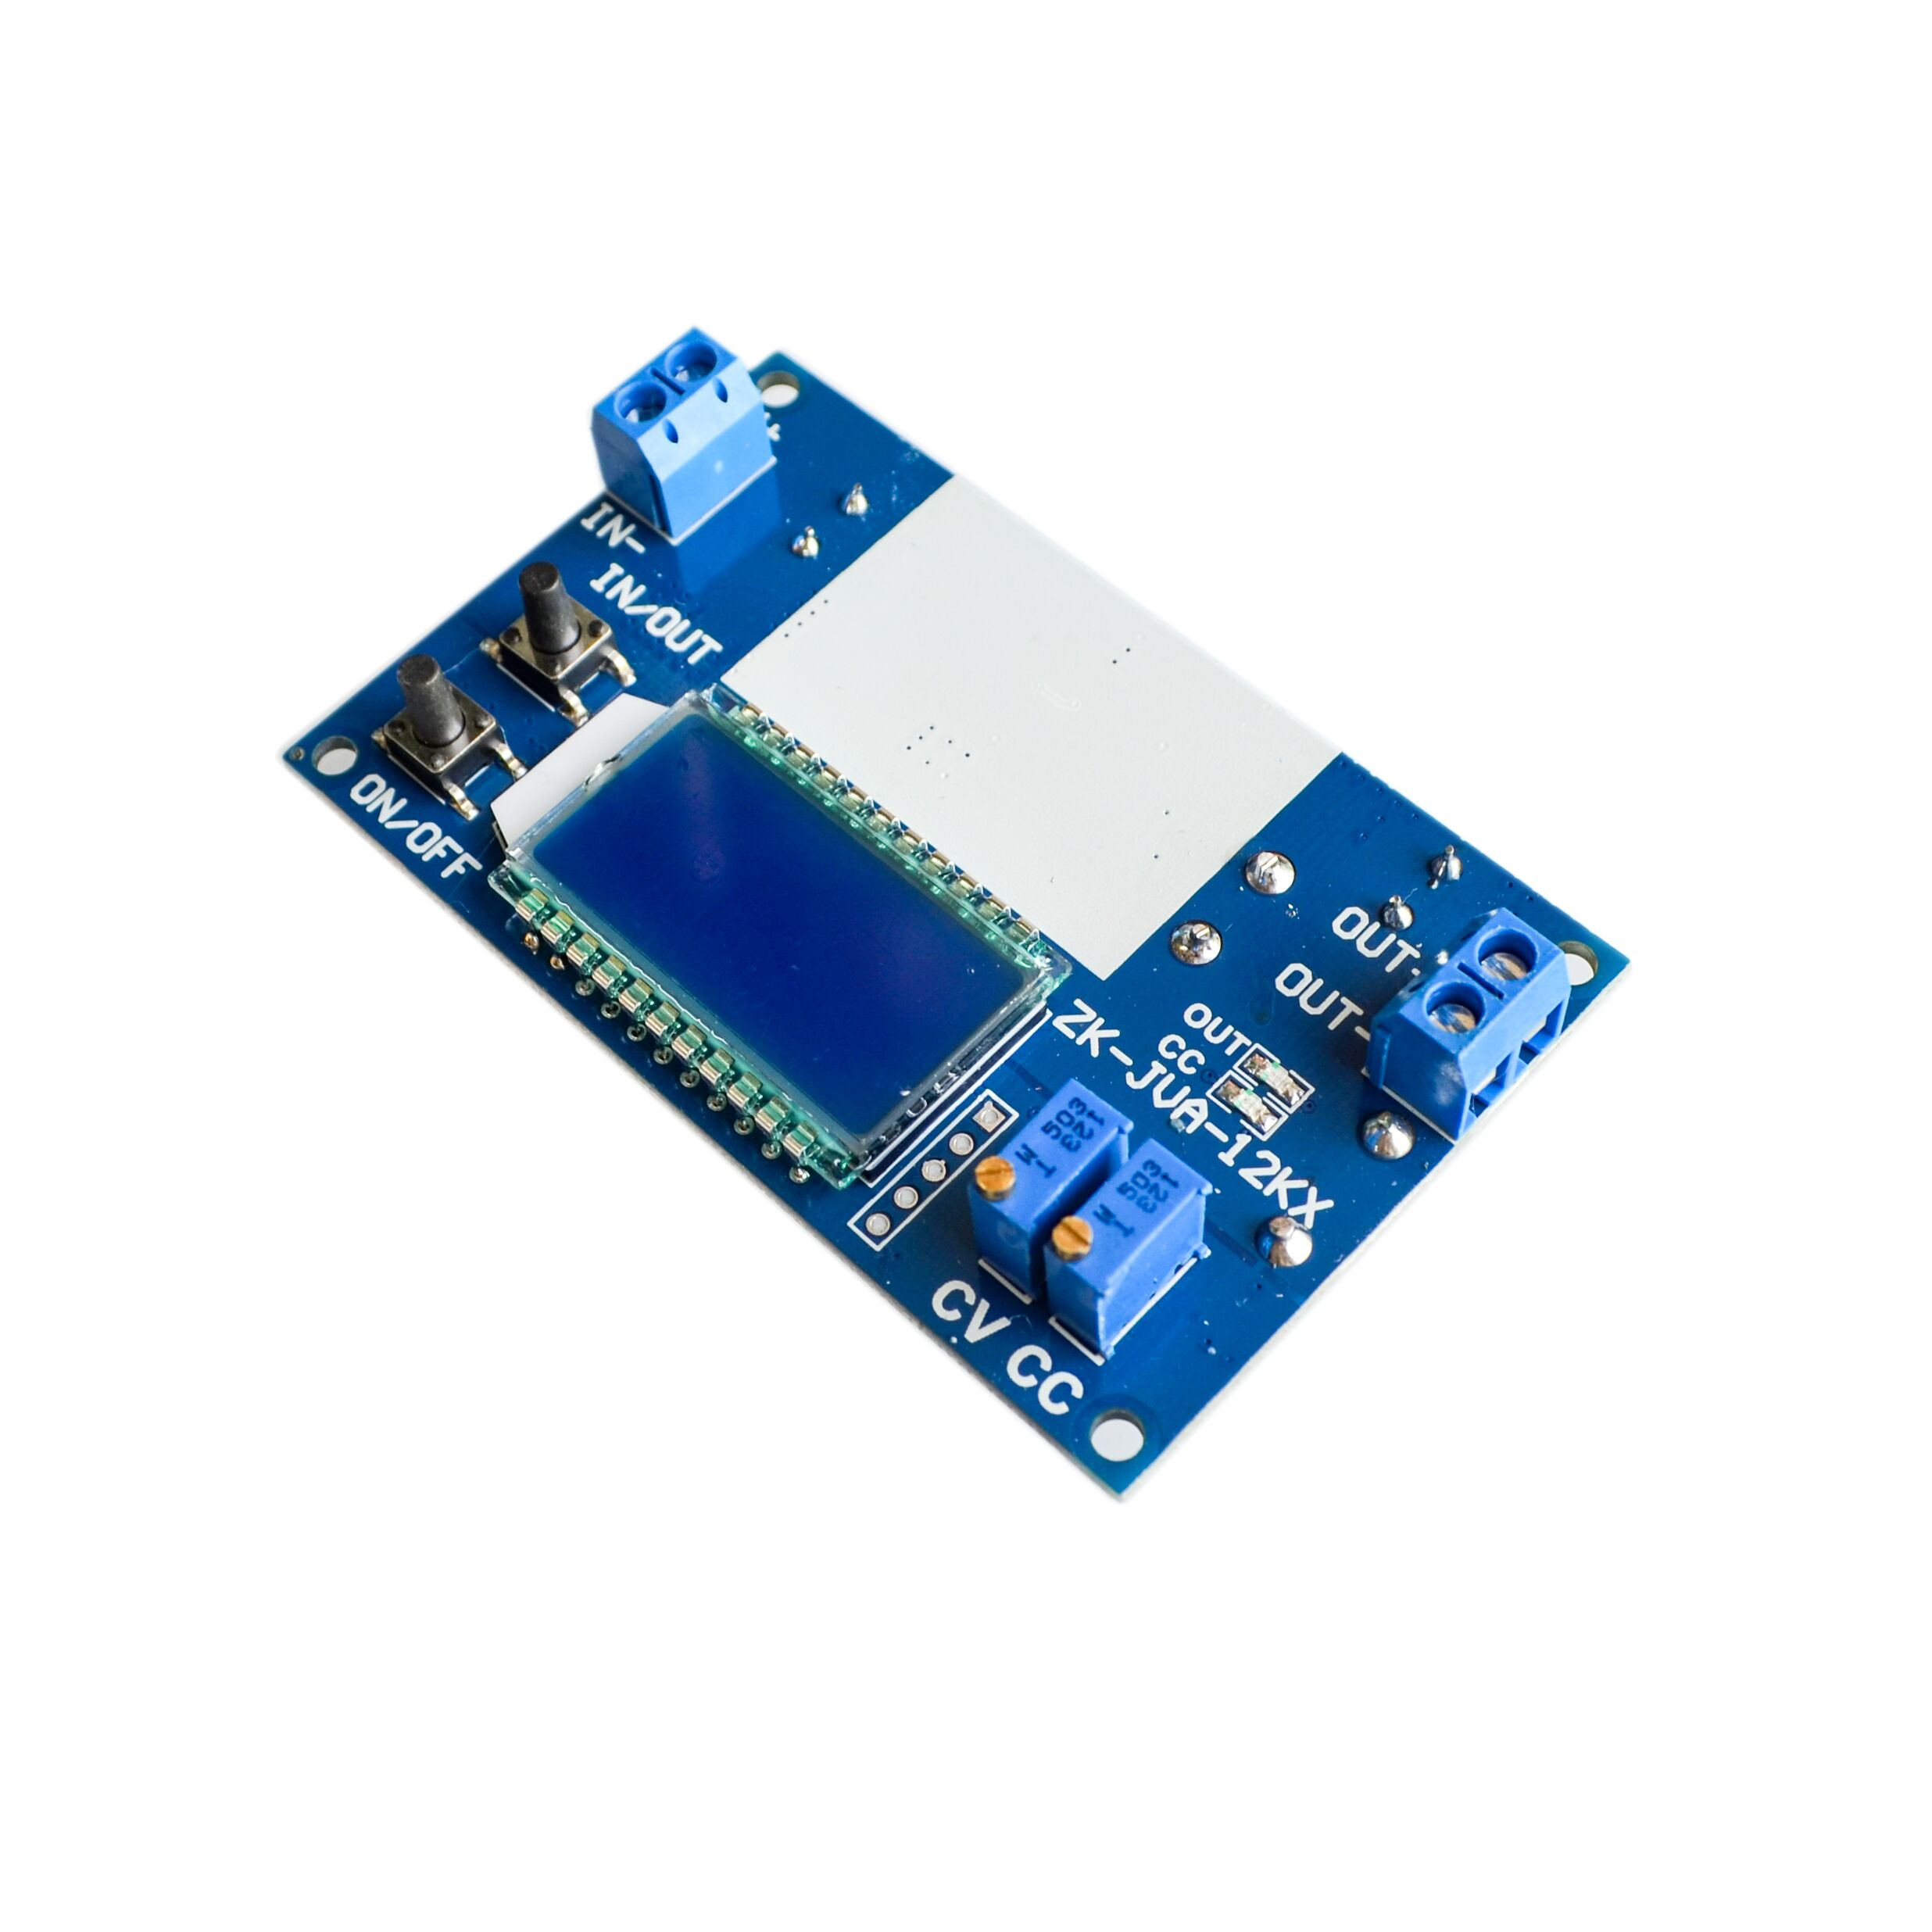 12A 160W DC-DC Step Down Module Adjustable Buck Power Supply Module With Digital LCD Display Constant Voltage Constant Current12A 160W DC-DC Step Down Module Adjustable Buck Power Supply Module With Digital LCD Display Constant Voltage Constant Current